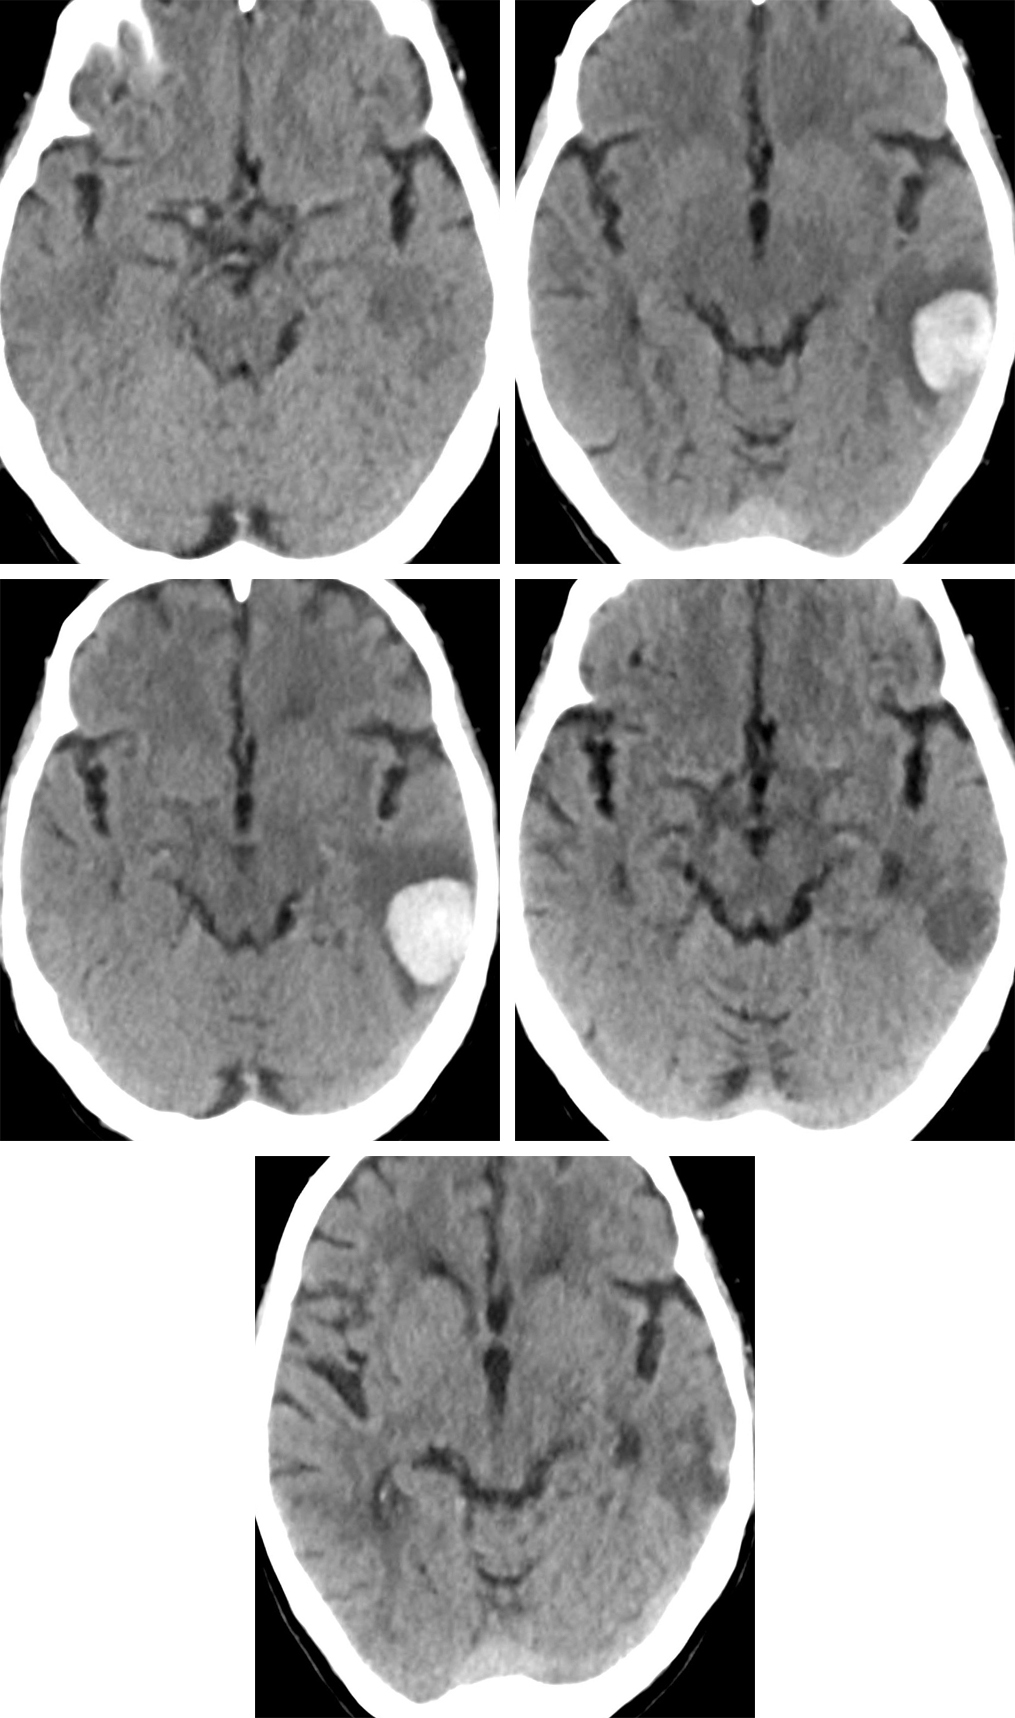 Figure 1: Multiple CT images over time demonstrate the evolution of a hemorrhagic parenchymal contusion in a typical location over the petrous ridge of the temporal bone. The hematoma is not visible on day 1 (top row left), but appears and enlarges over the next few days (top row right and middle row left), a typical course for contusion. At day 17 (middle row right), all that remains is a hypodense hematoma that has already begun to involute. 1 year from the initial trauma, the previous hematoma has evolved into a small amount of encephalomalacia (bottom row).